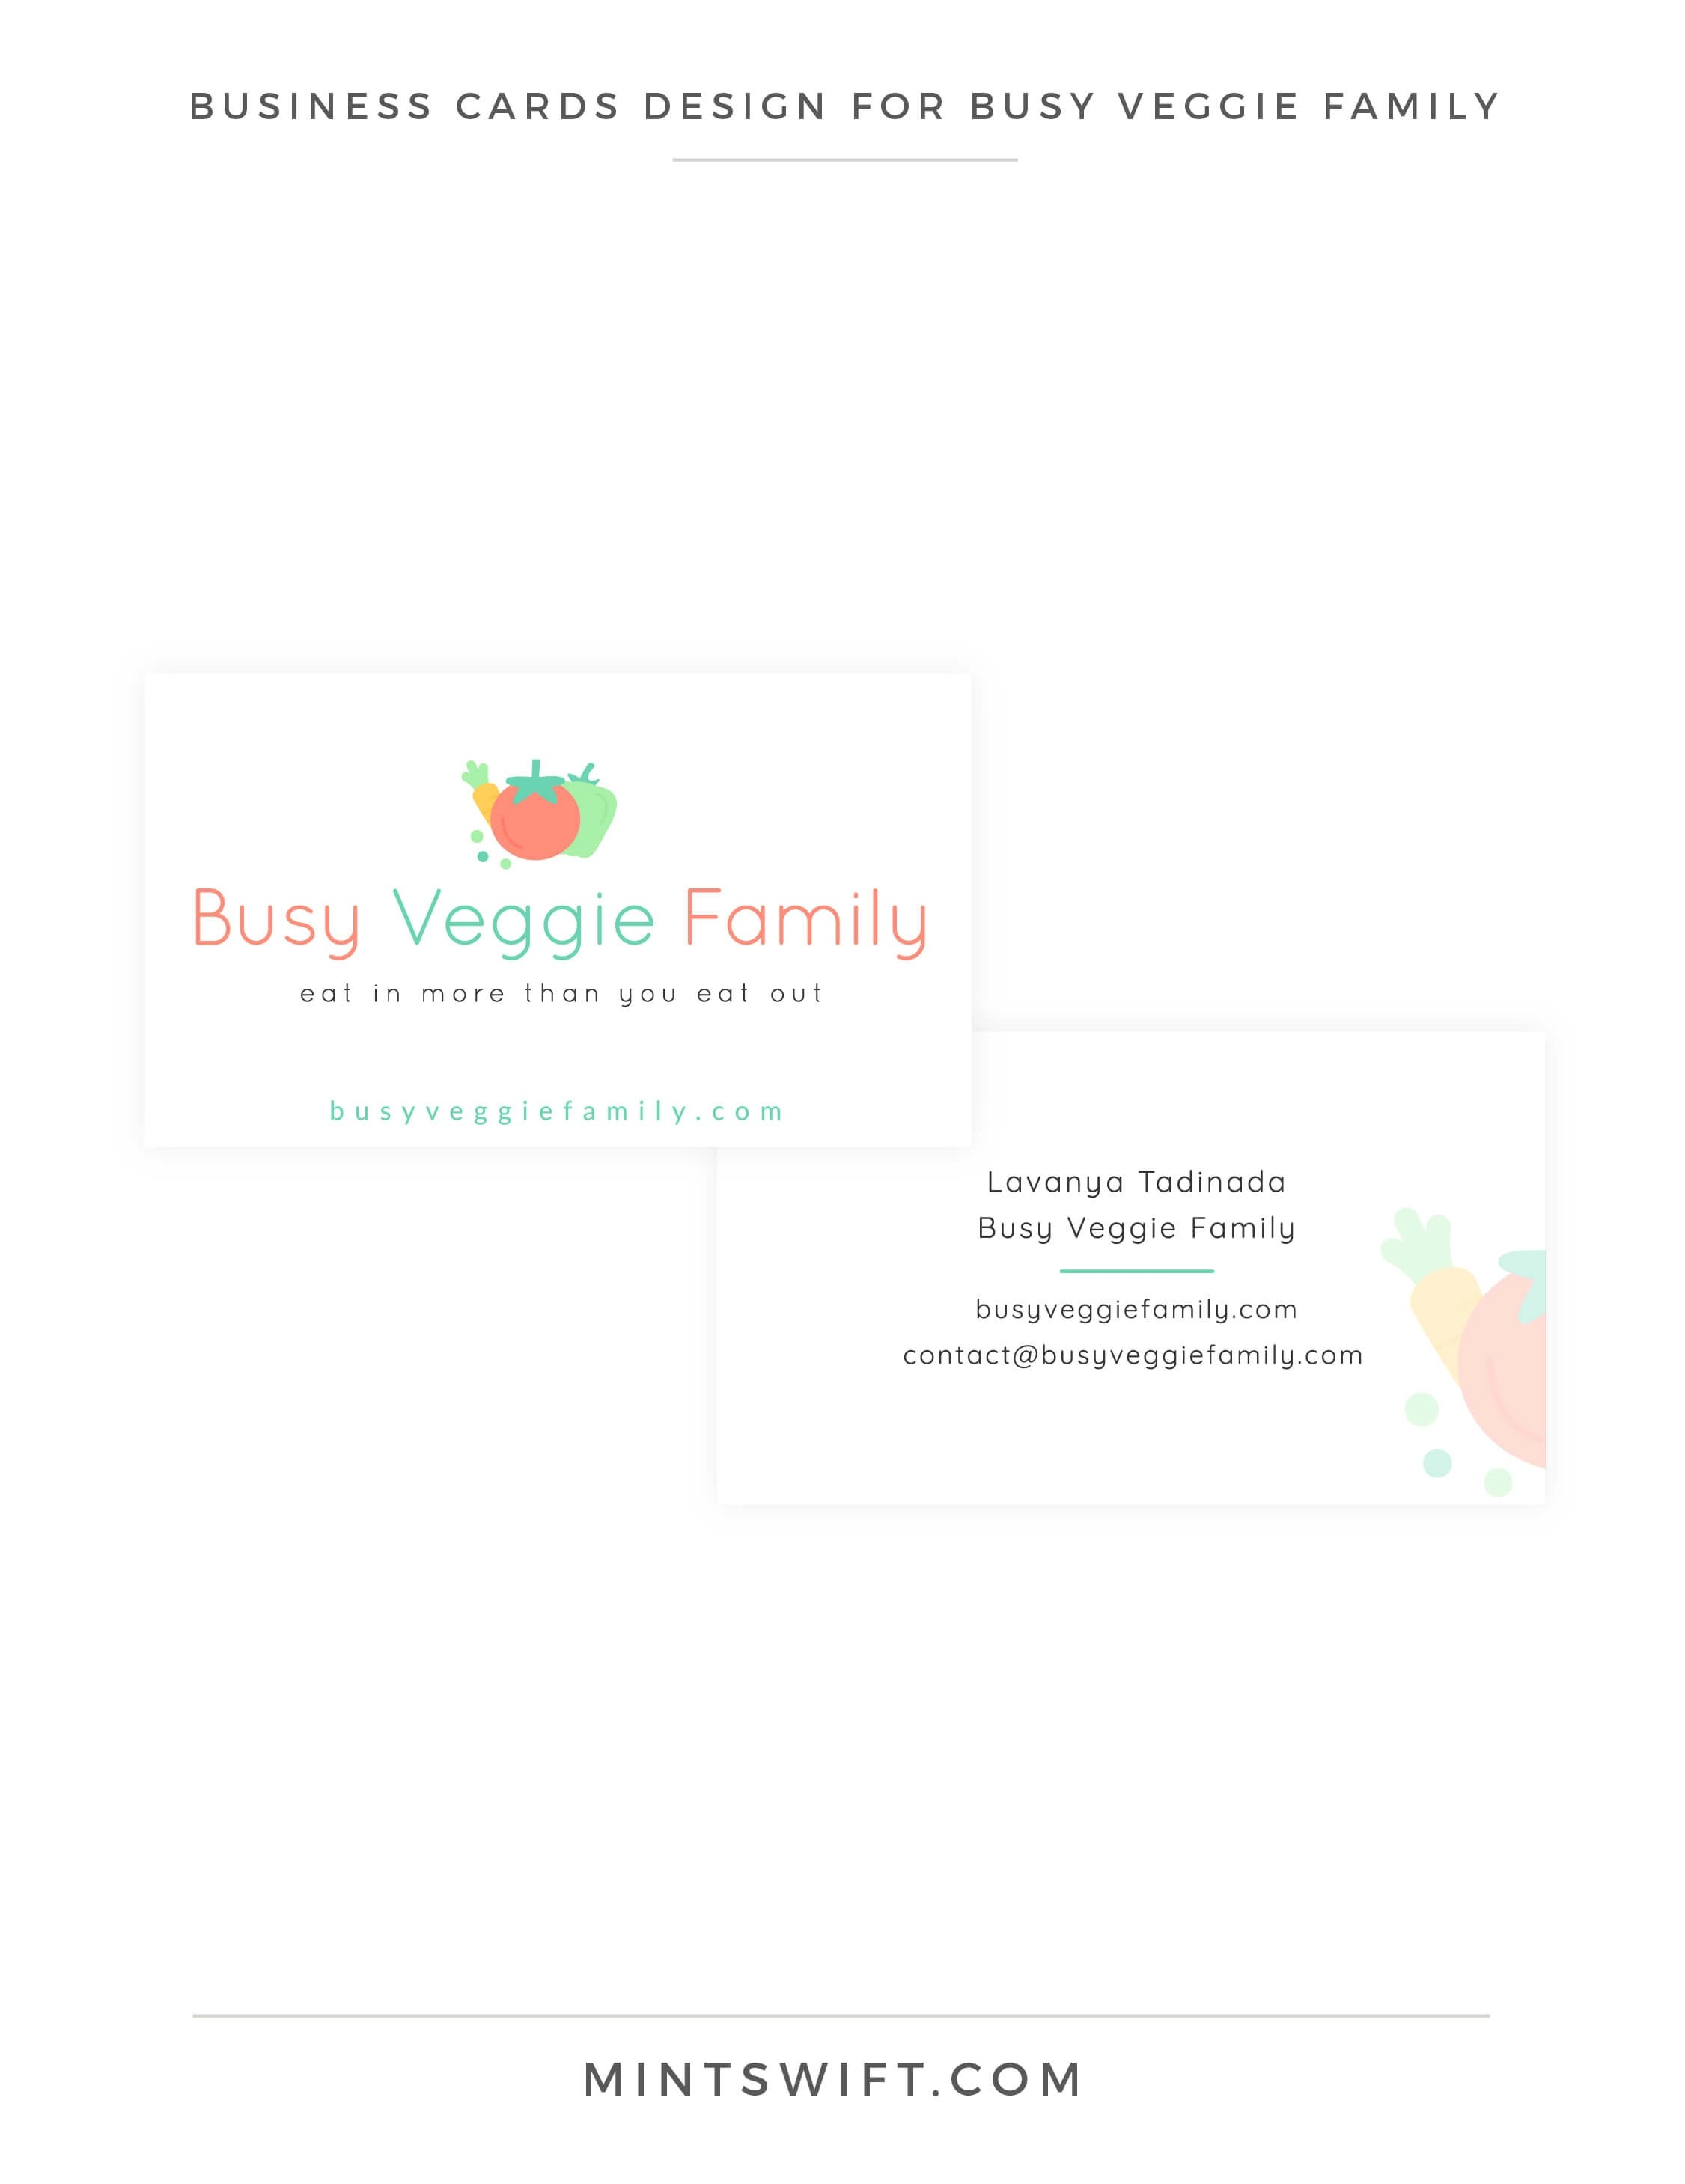 Busy Veggie Family - Business Cards Design - Brand & Website Design Package - MintSwift